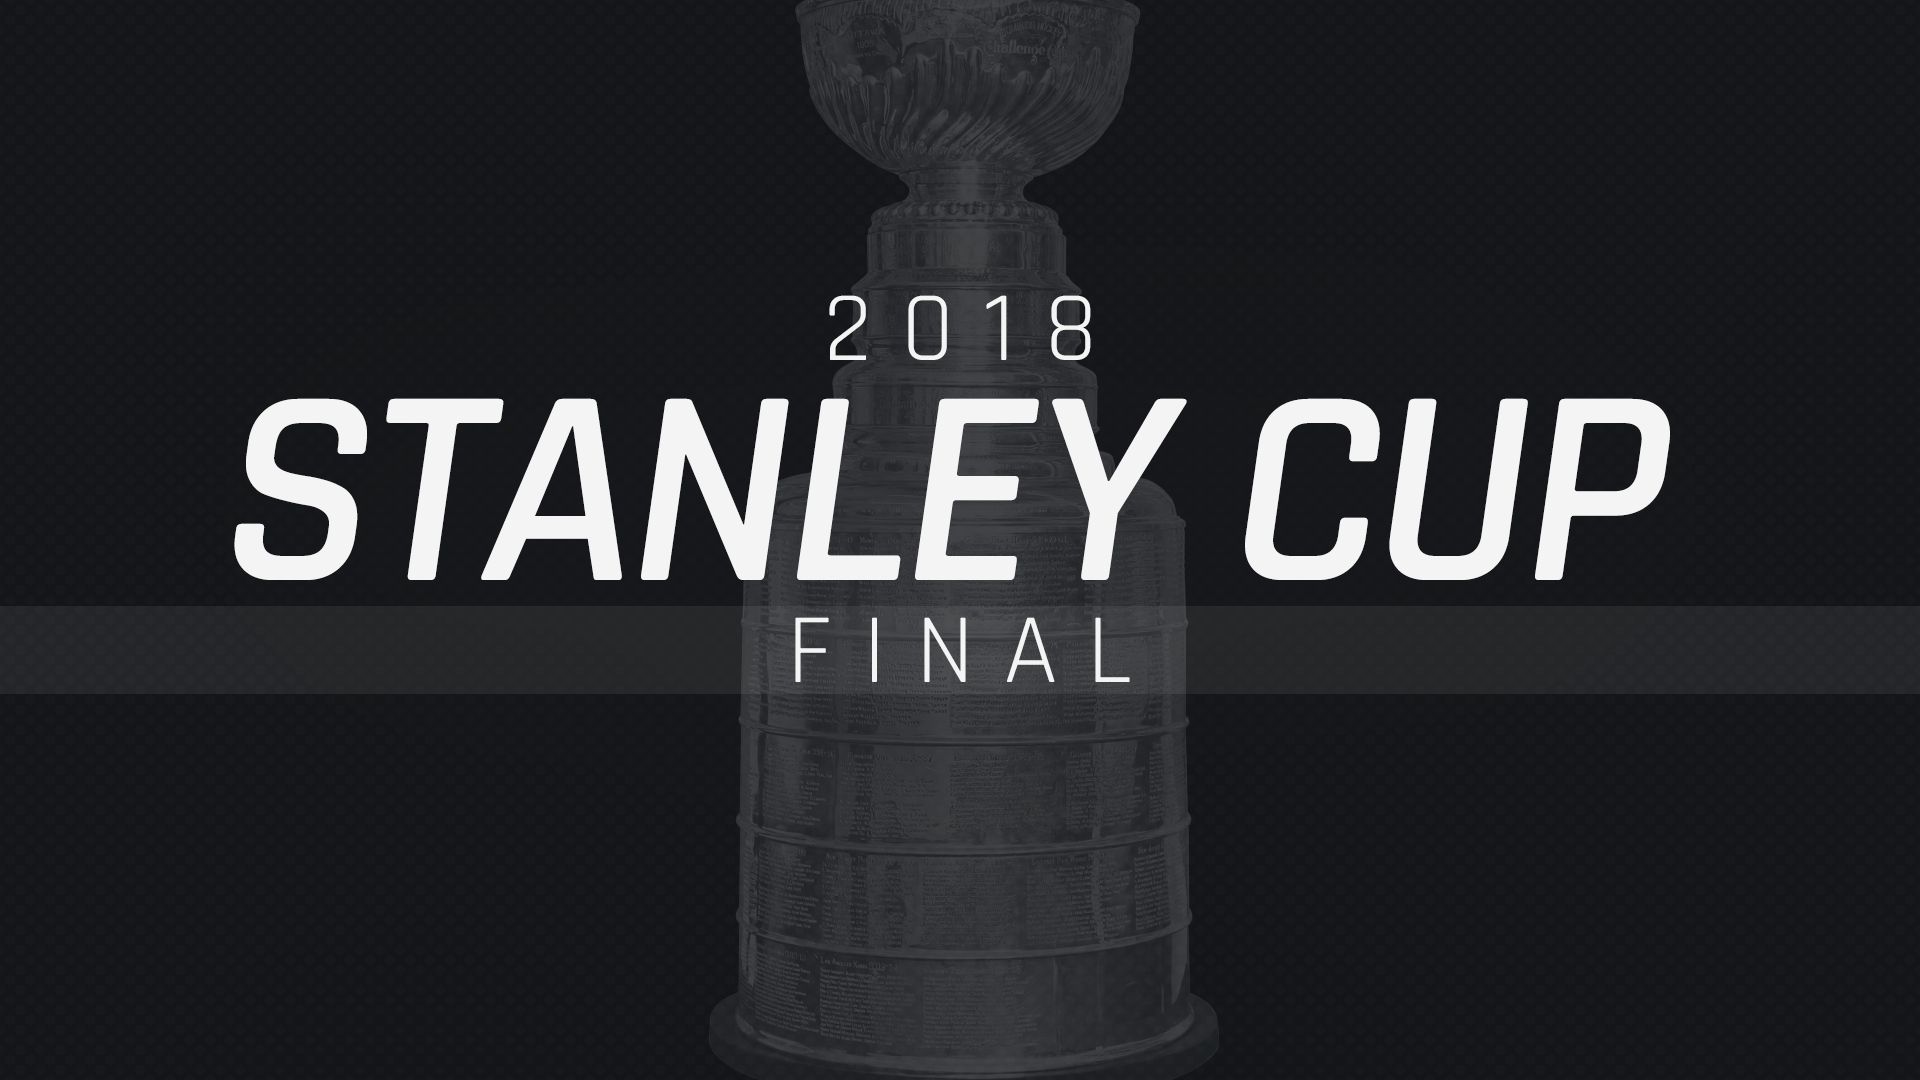 Stanley Cup Final 2018: Golden Knights vs. Capitals TV ...